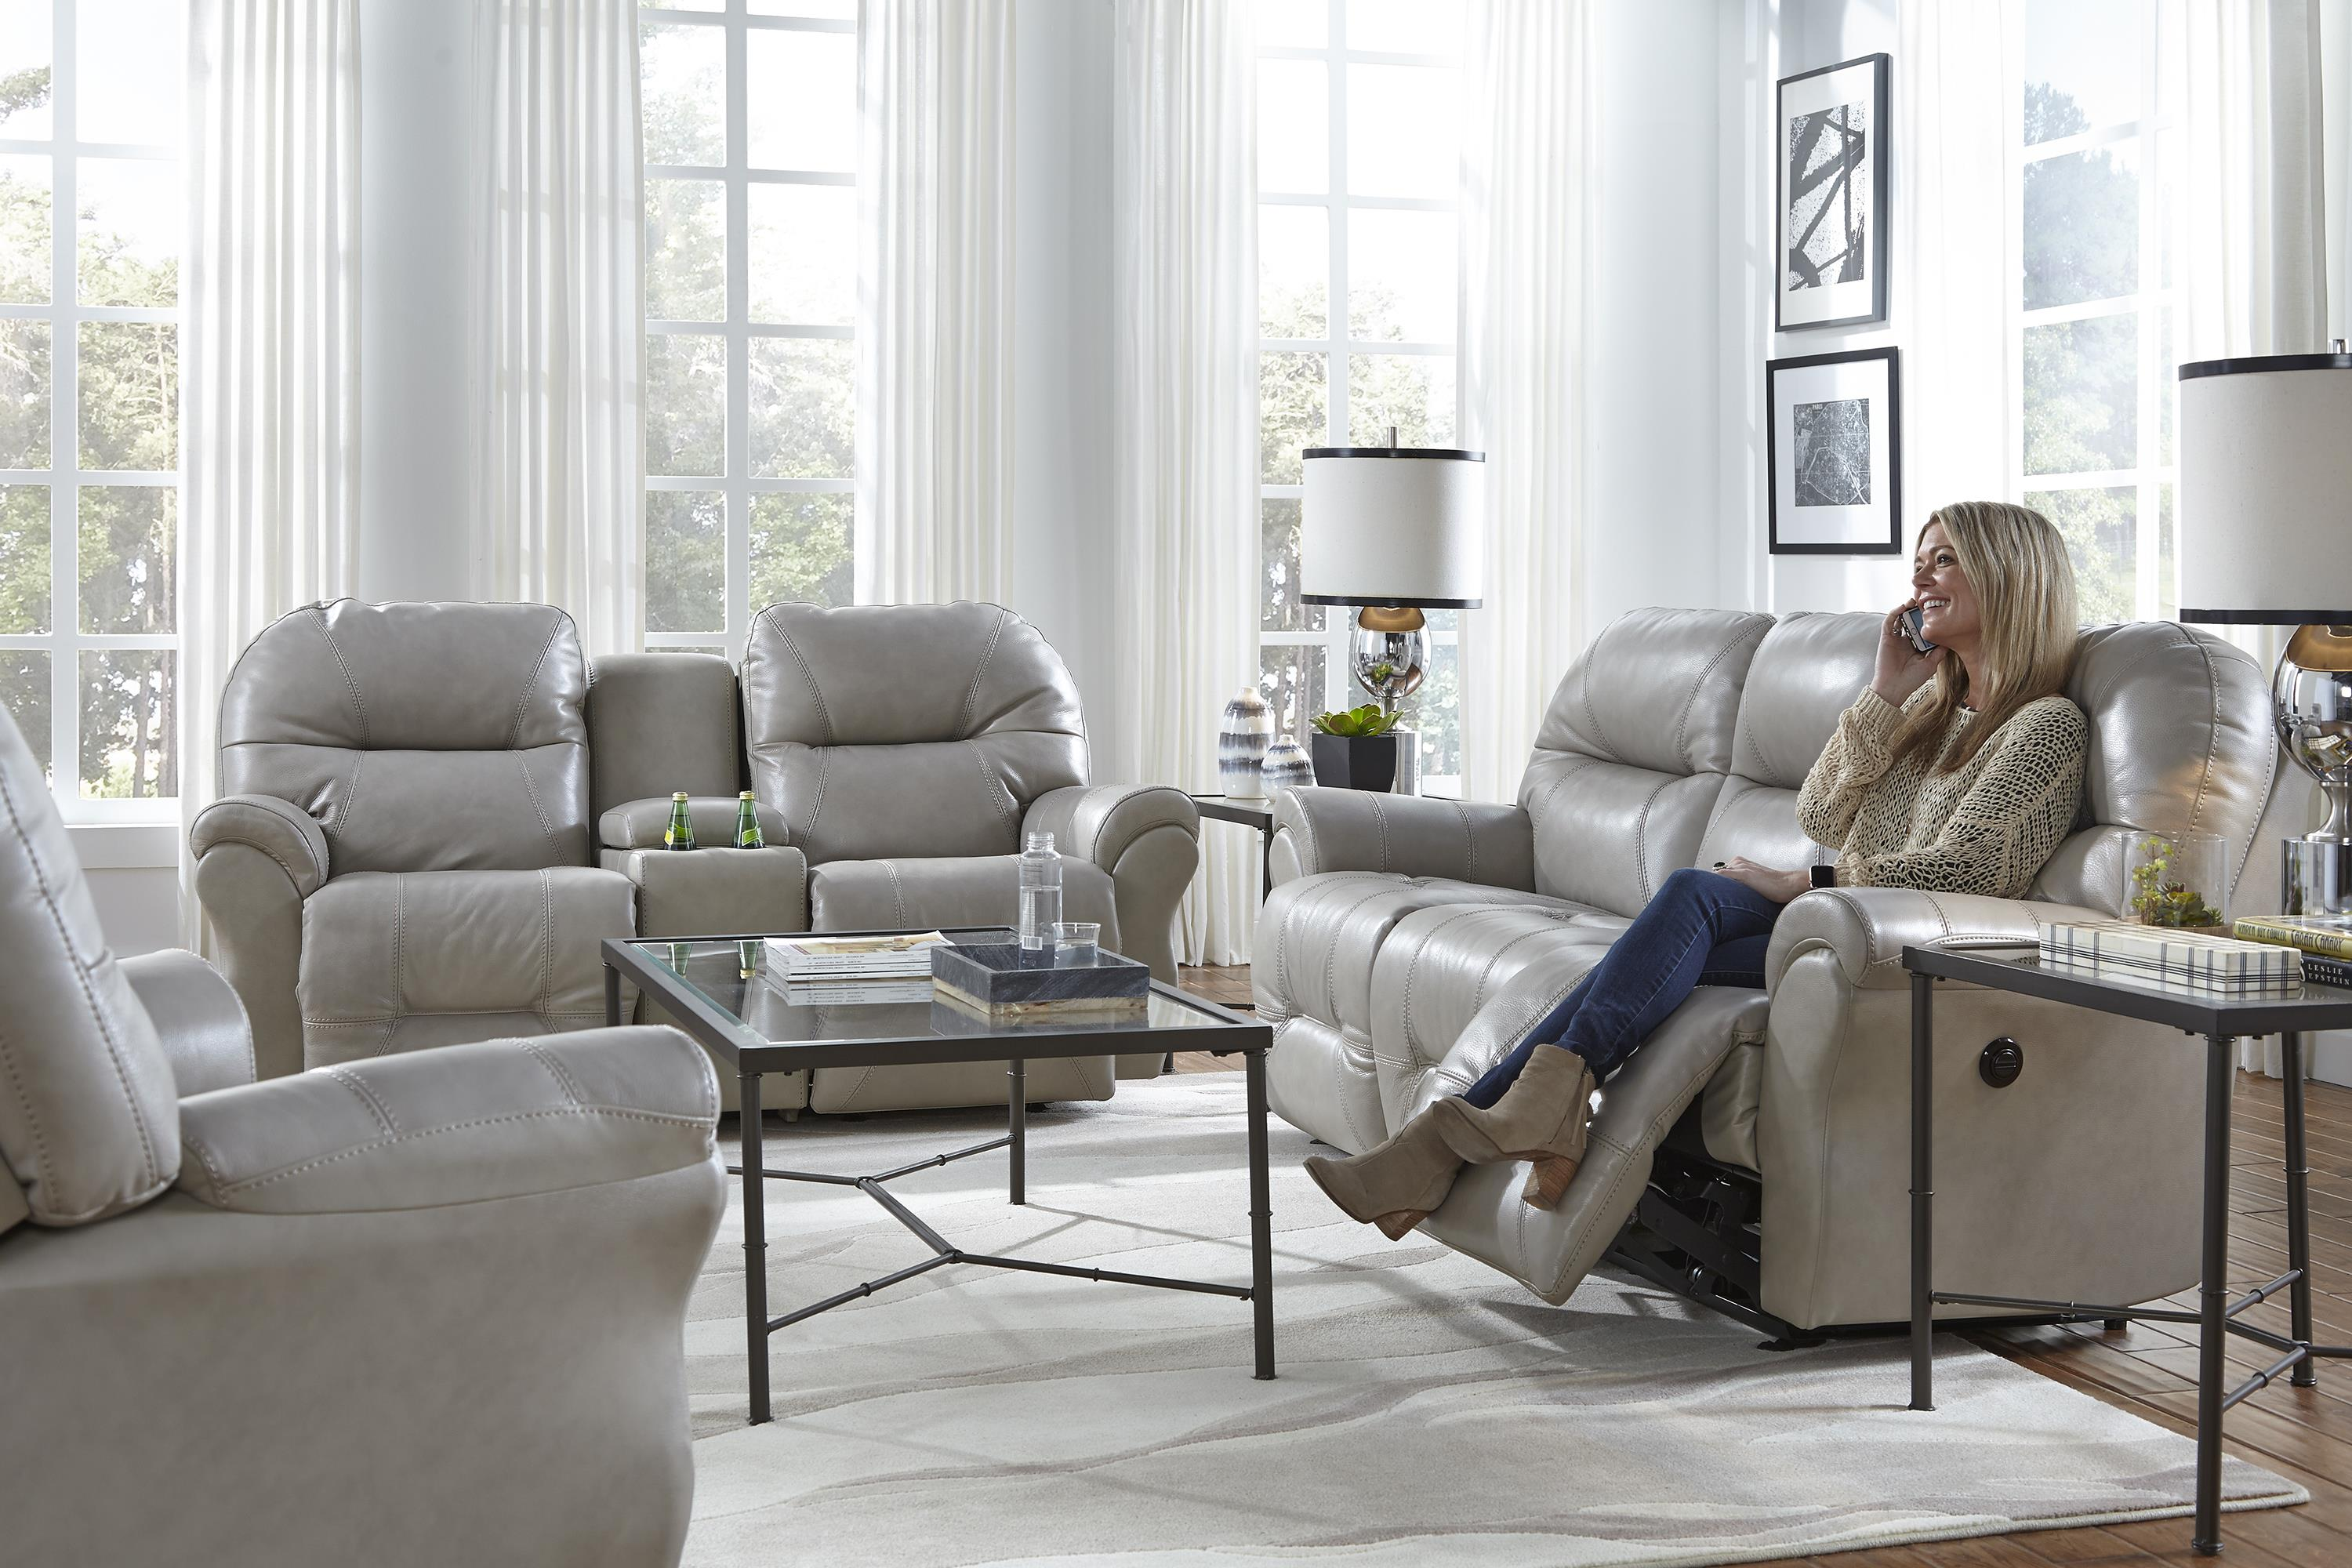 Best Home Furnishings Bo Reclining Sofa Chaise By Sofas Lesville Carmel Avon Indianapolis Indiana